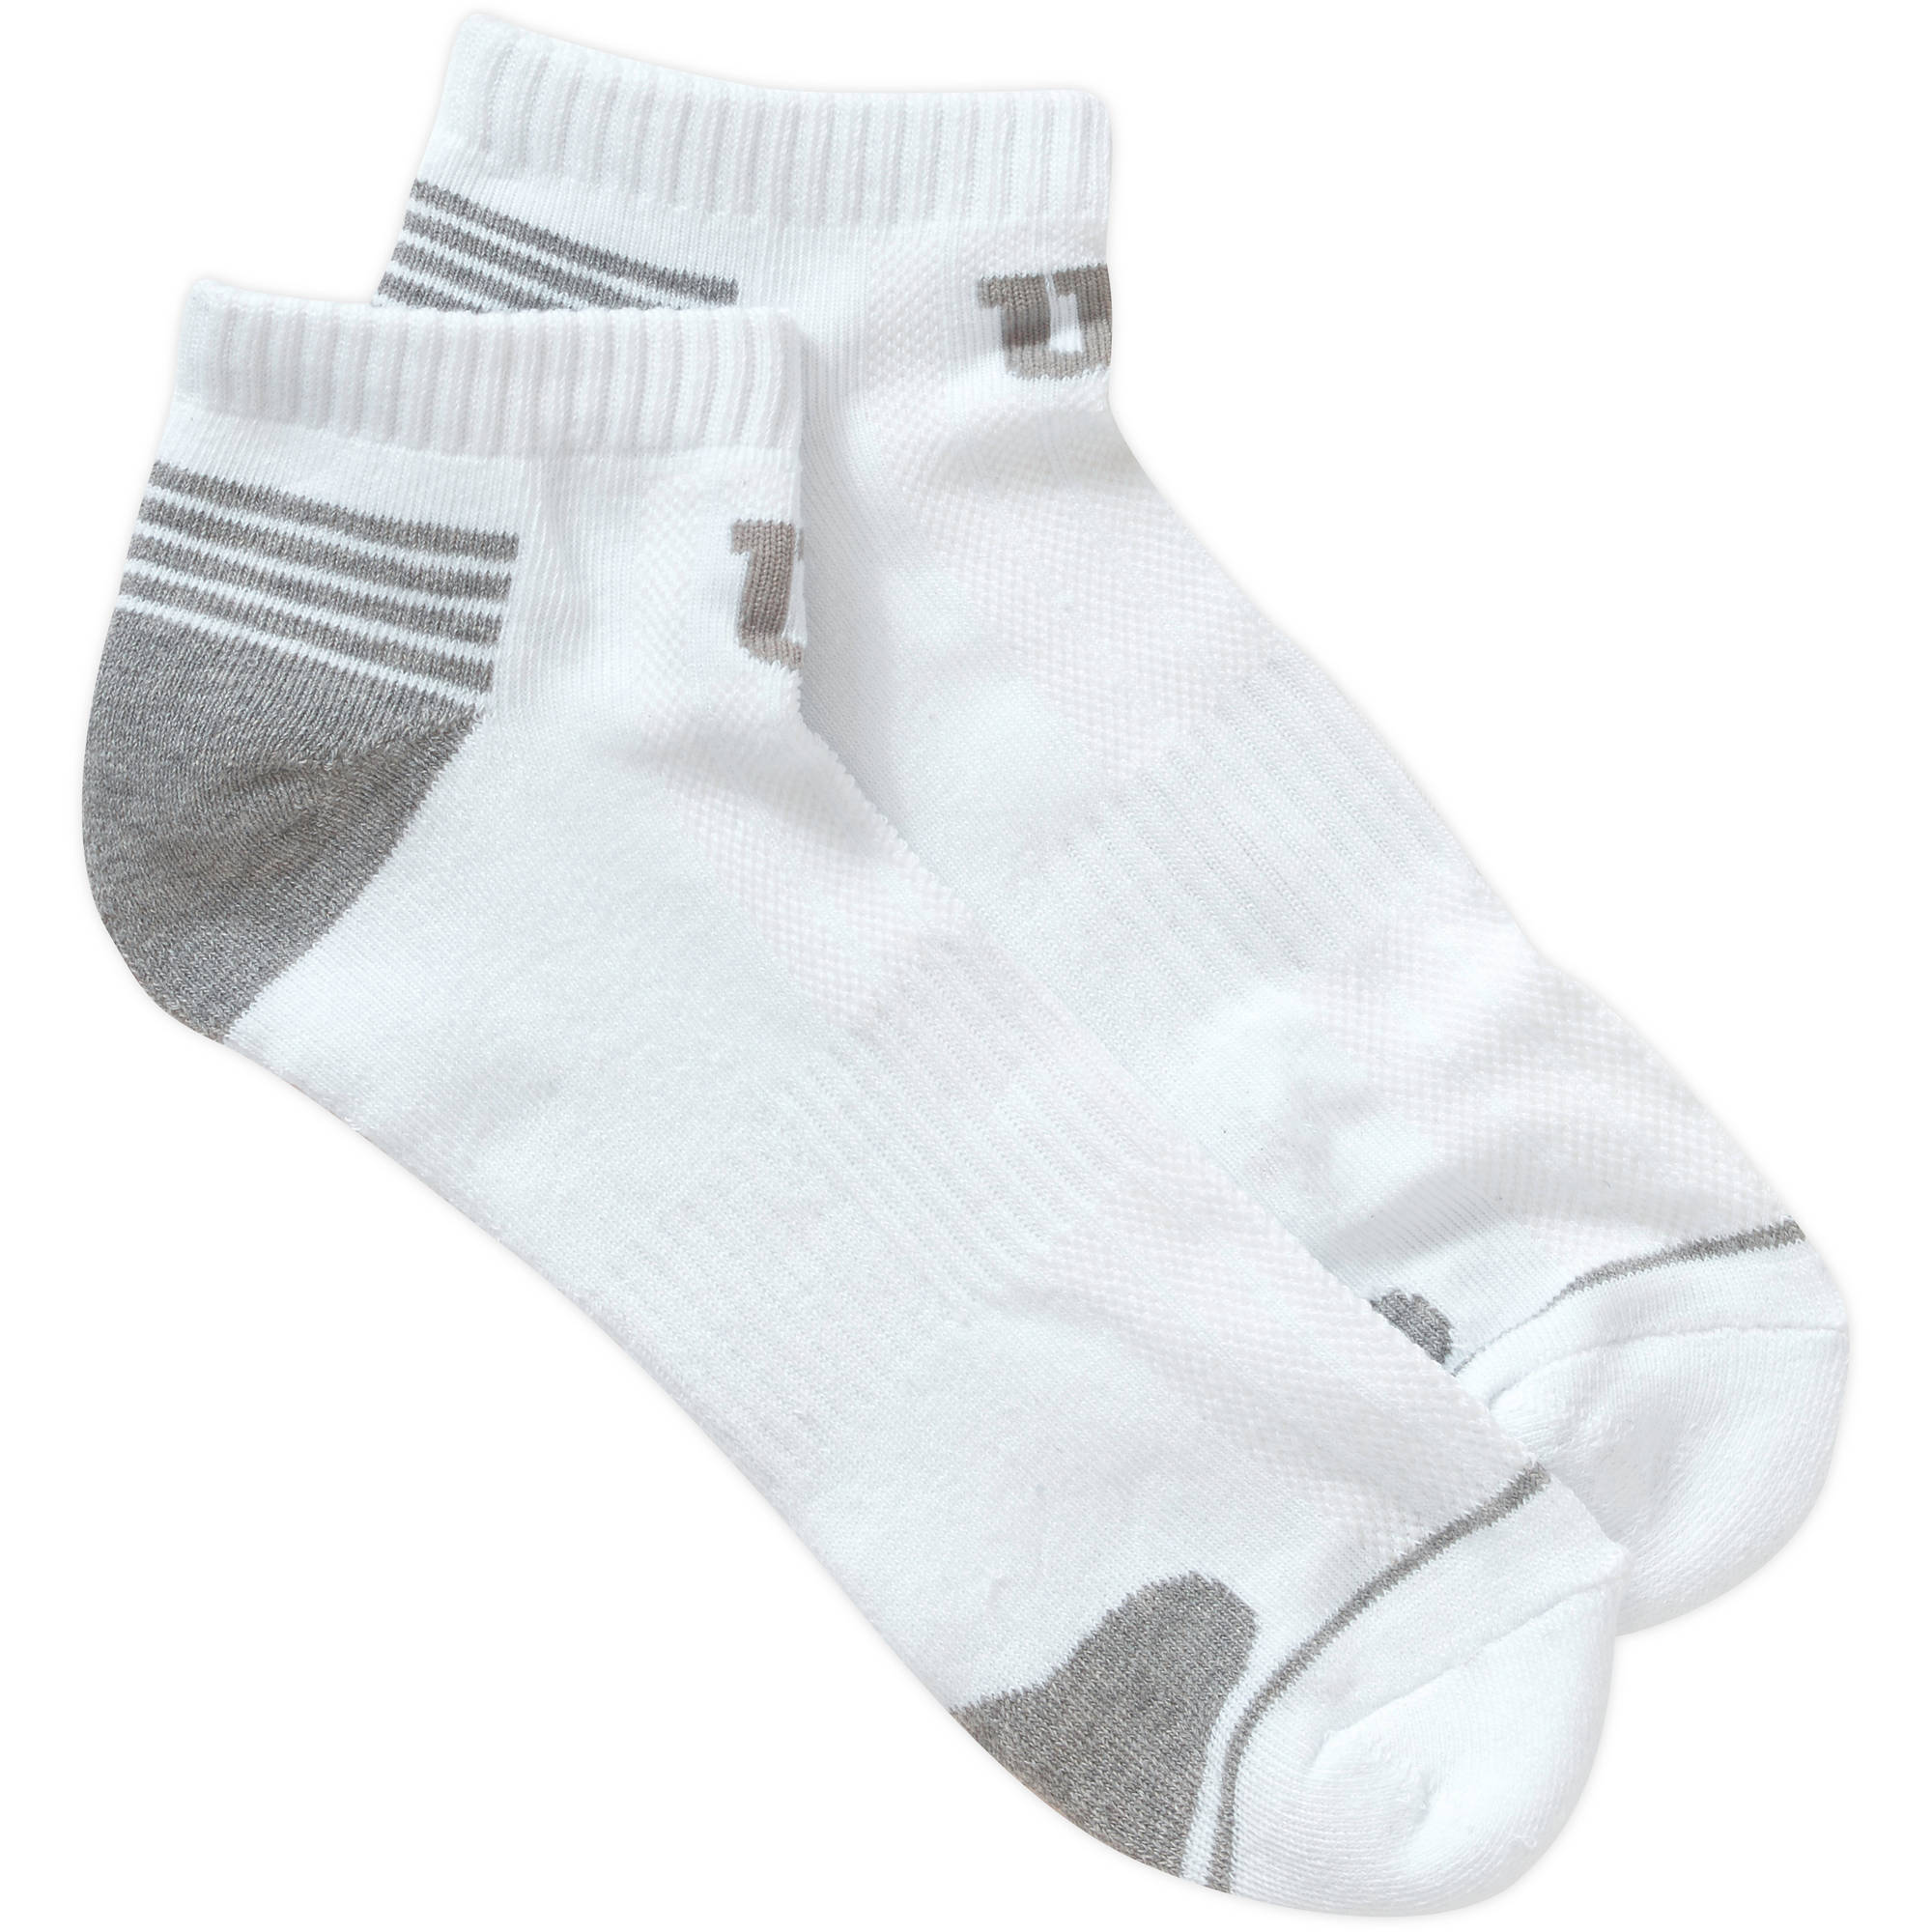 Wilson 6 Pack Men's Performance No Show Sock